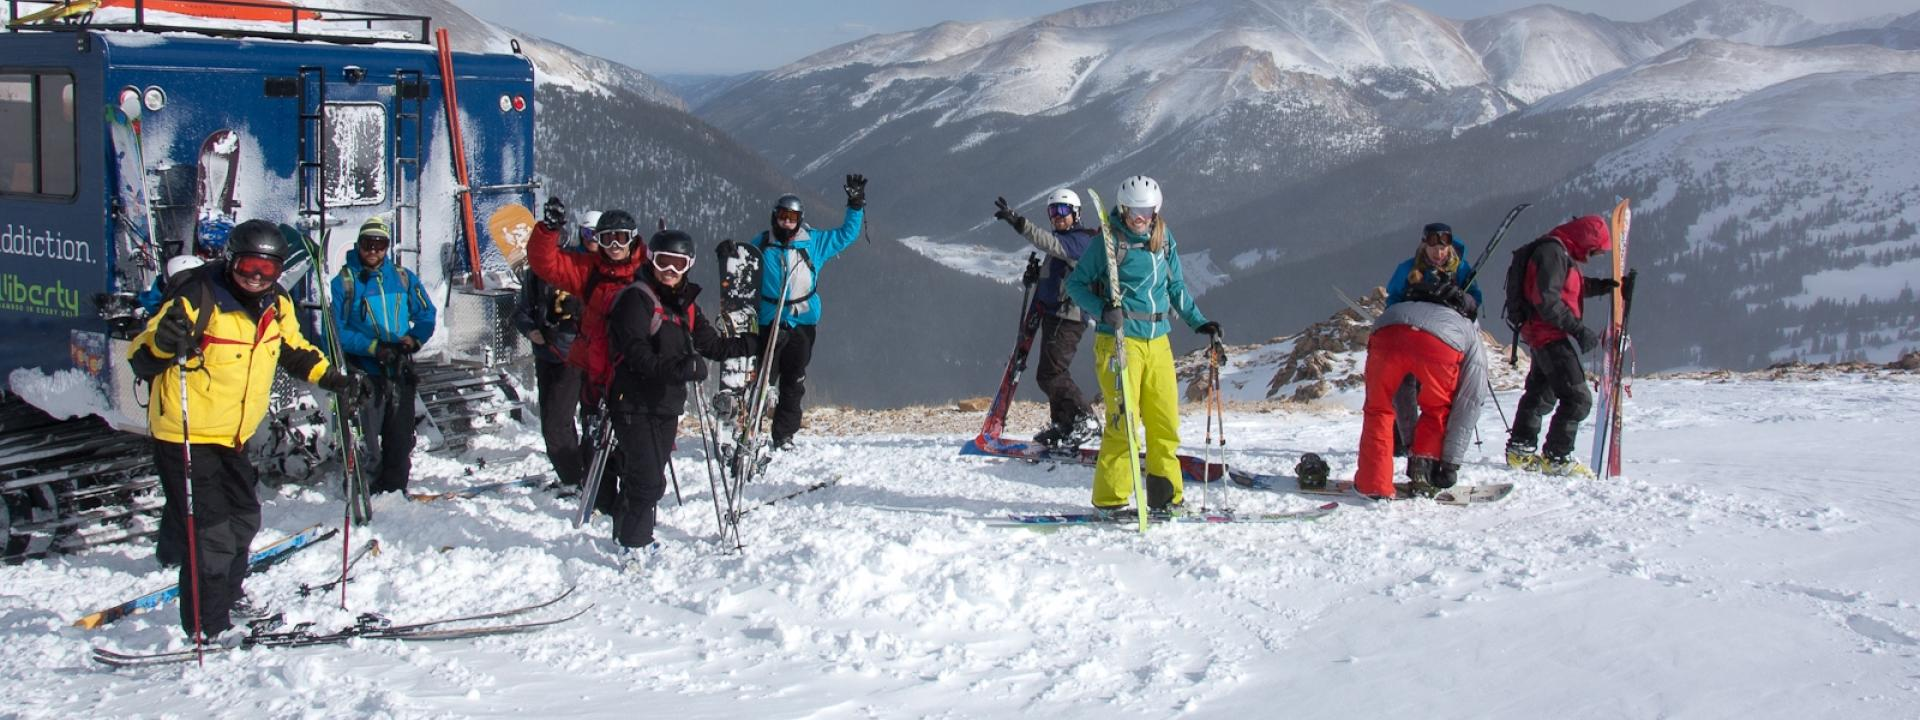 Colorado's best snowcat skiing and snowboarding adventure near Winter Park, Colorado